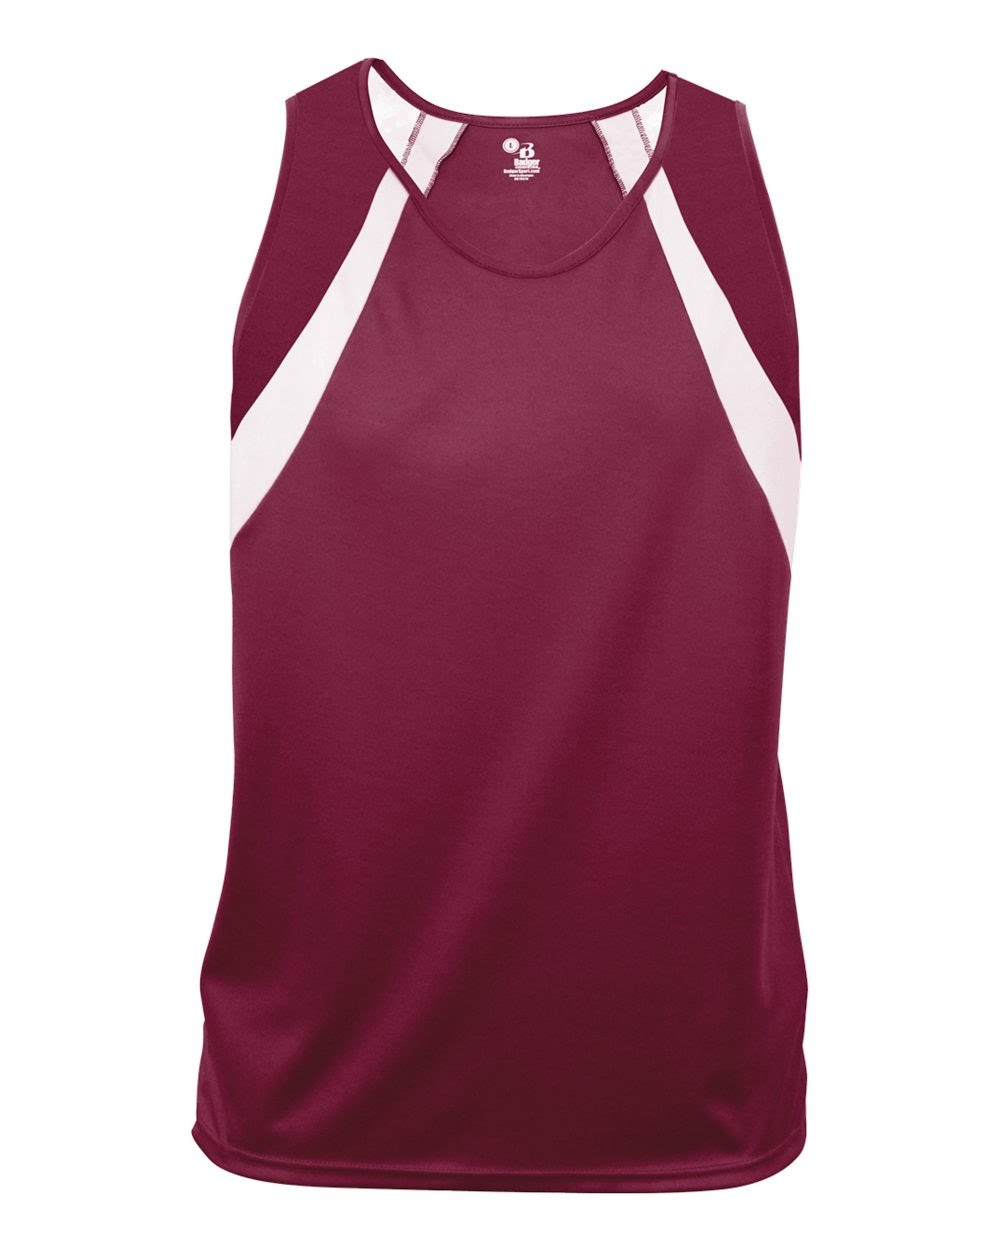 Russell Women's Singlet, Maroon/White, 2 Color Custom Screen Print, White And Gray, 6-8 Inch District logo, 7T2HPXK, Sizes XS-XXL